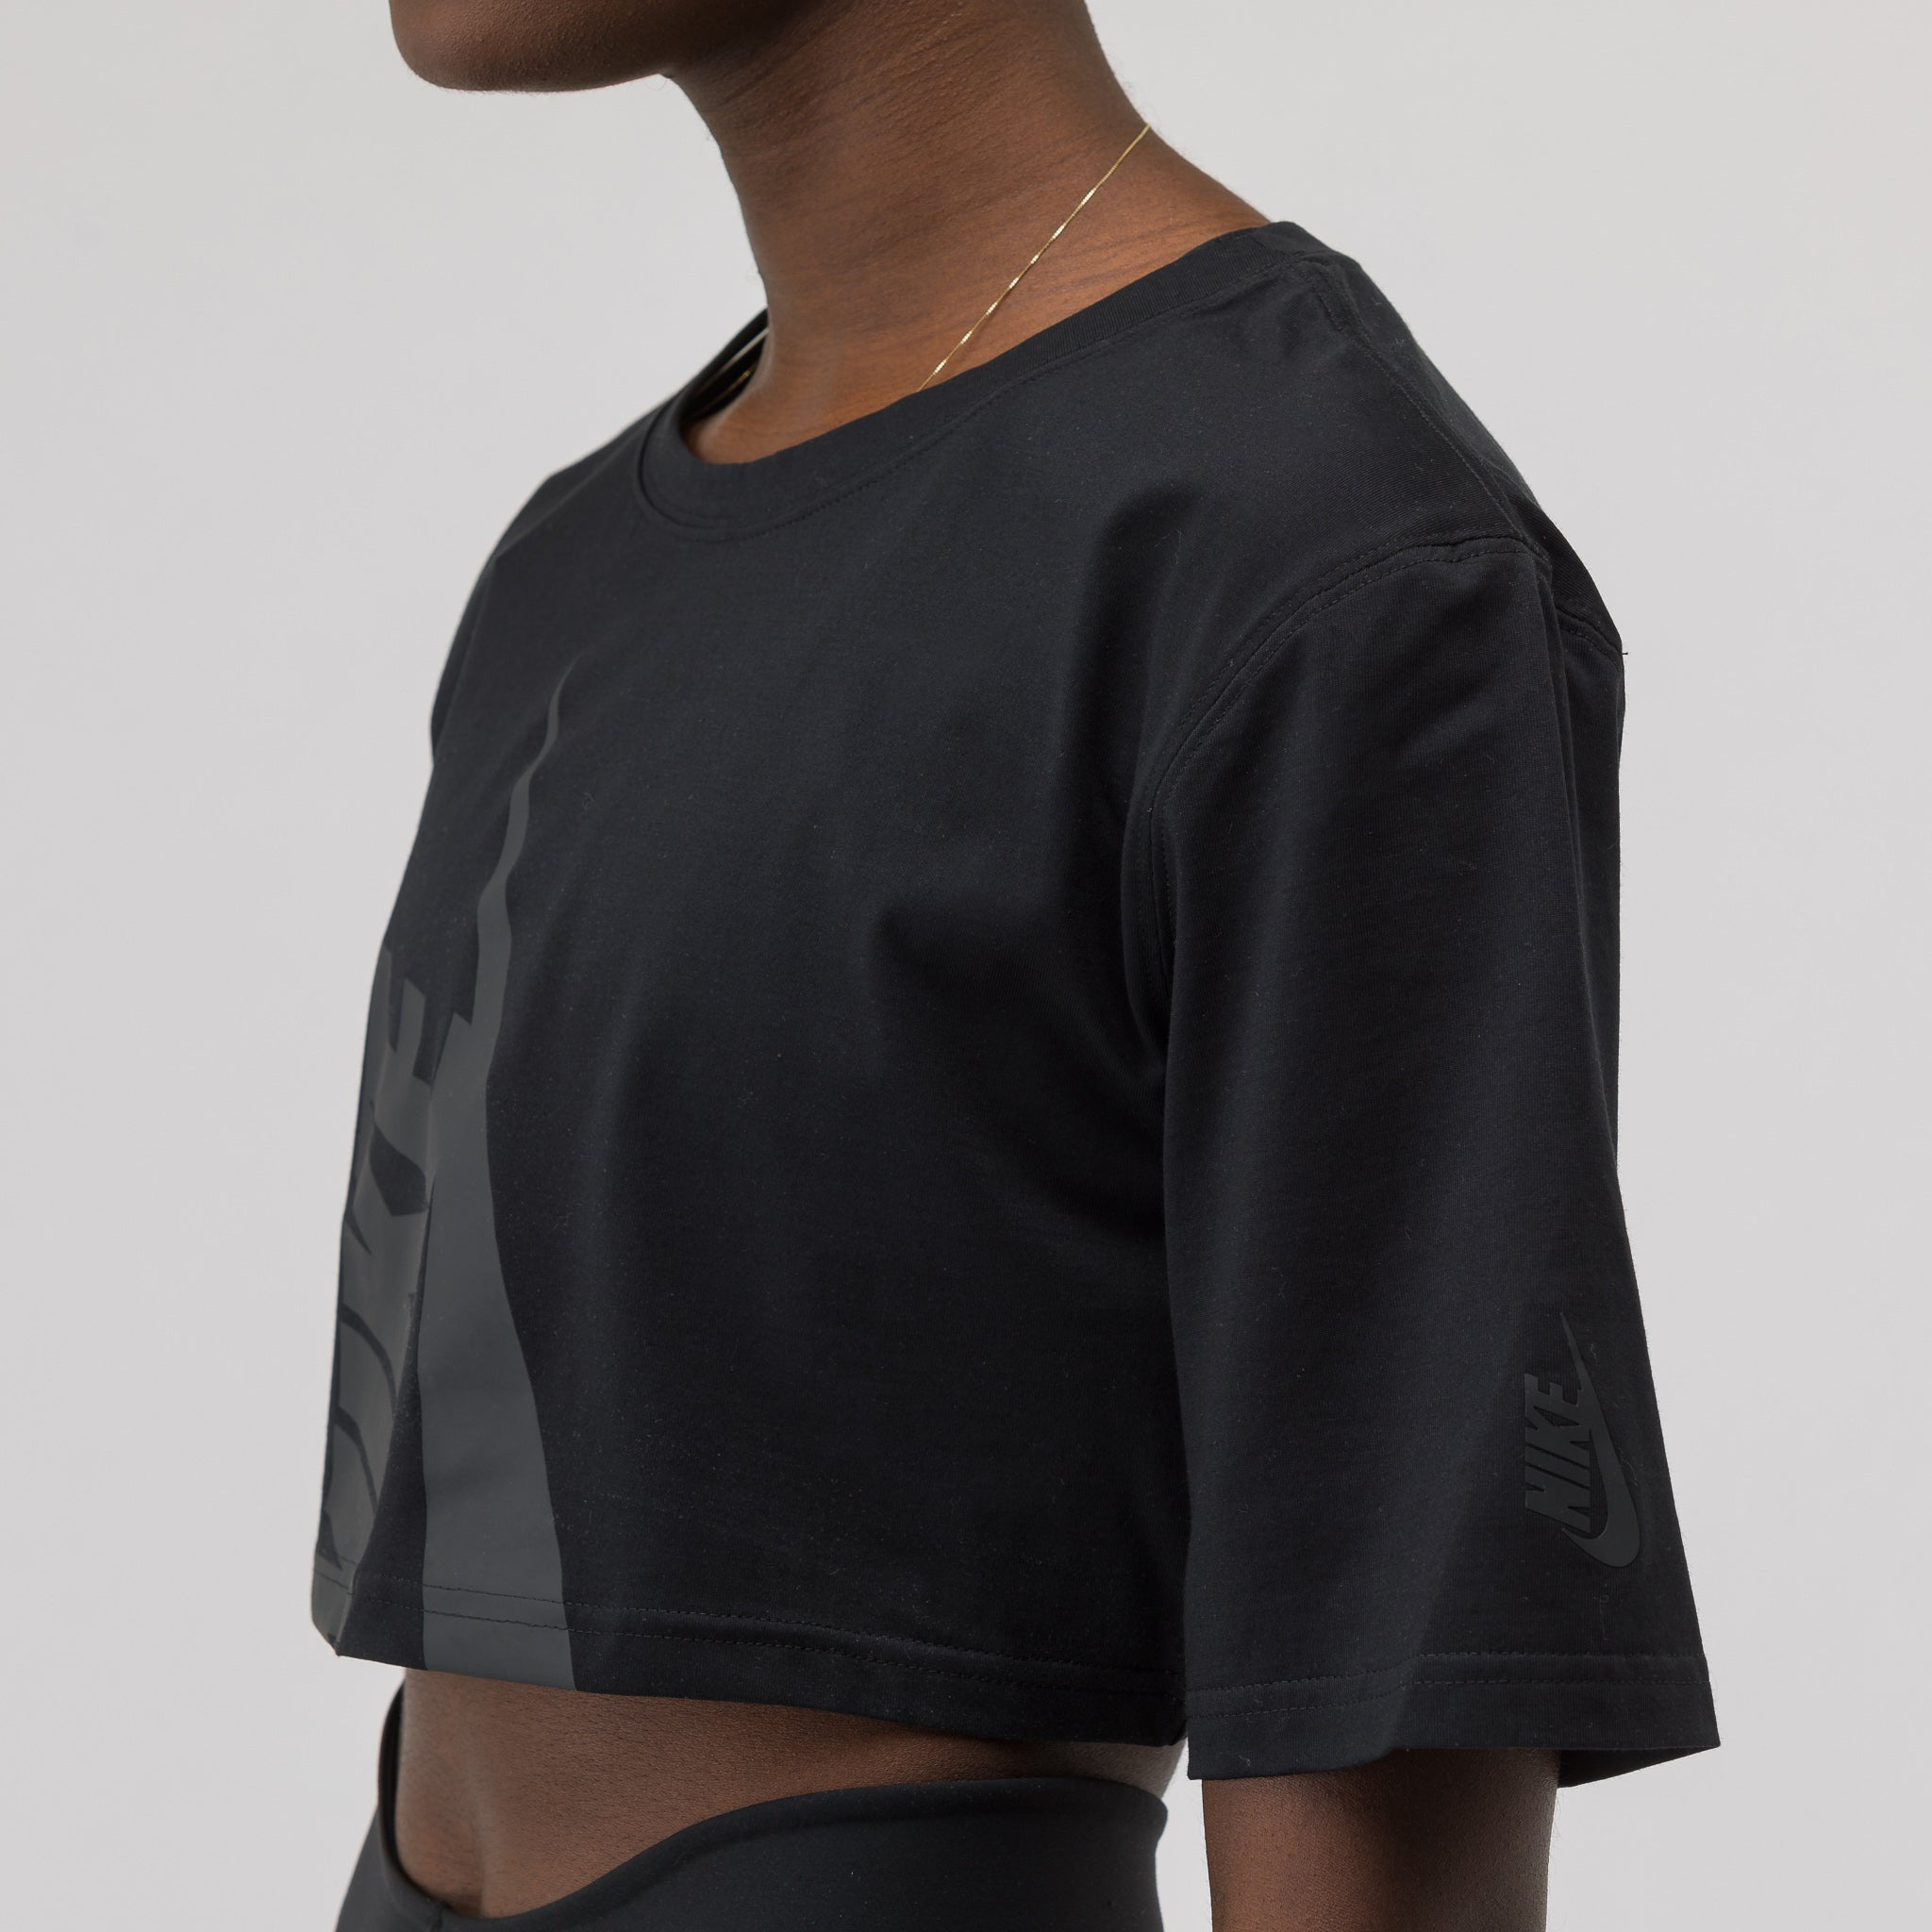 Women's Half Shirt in Black